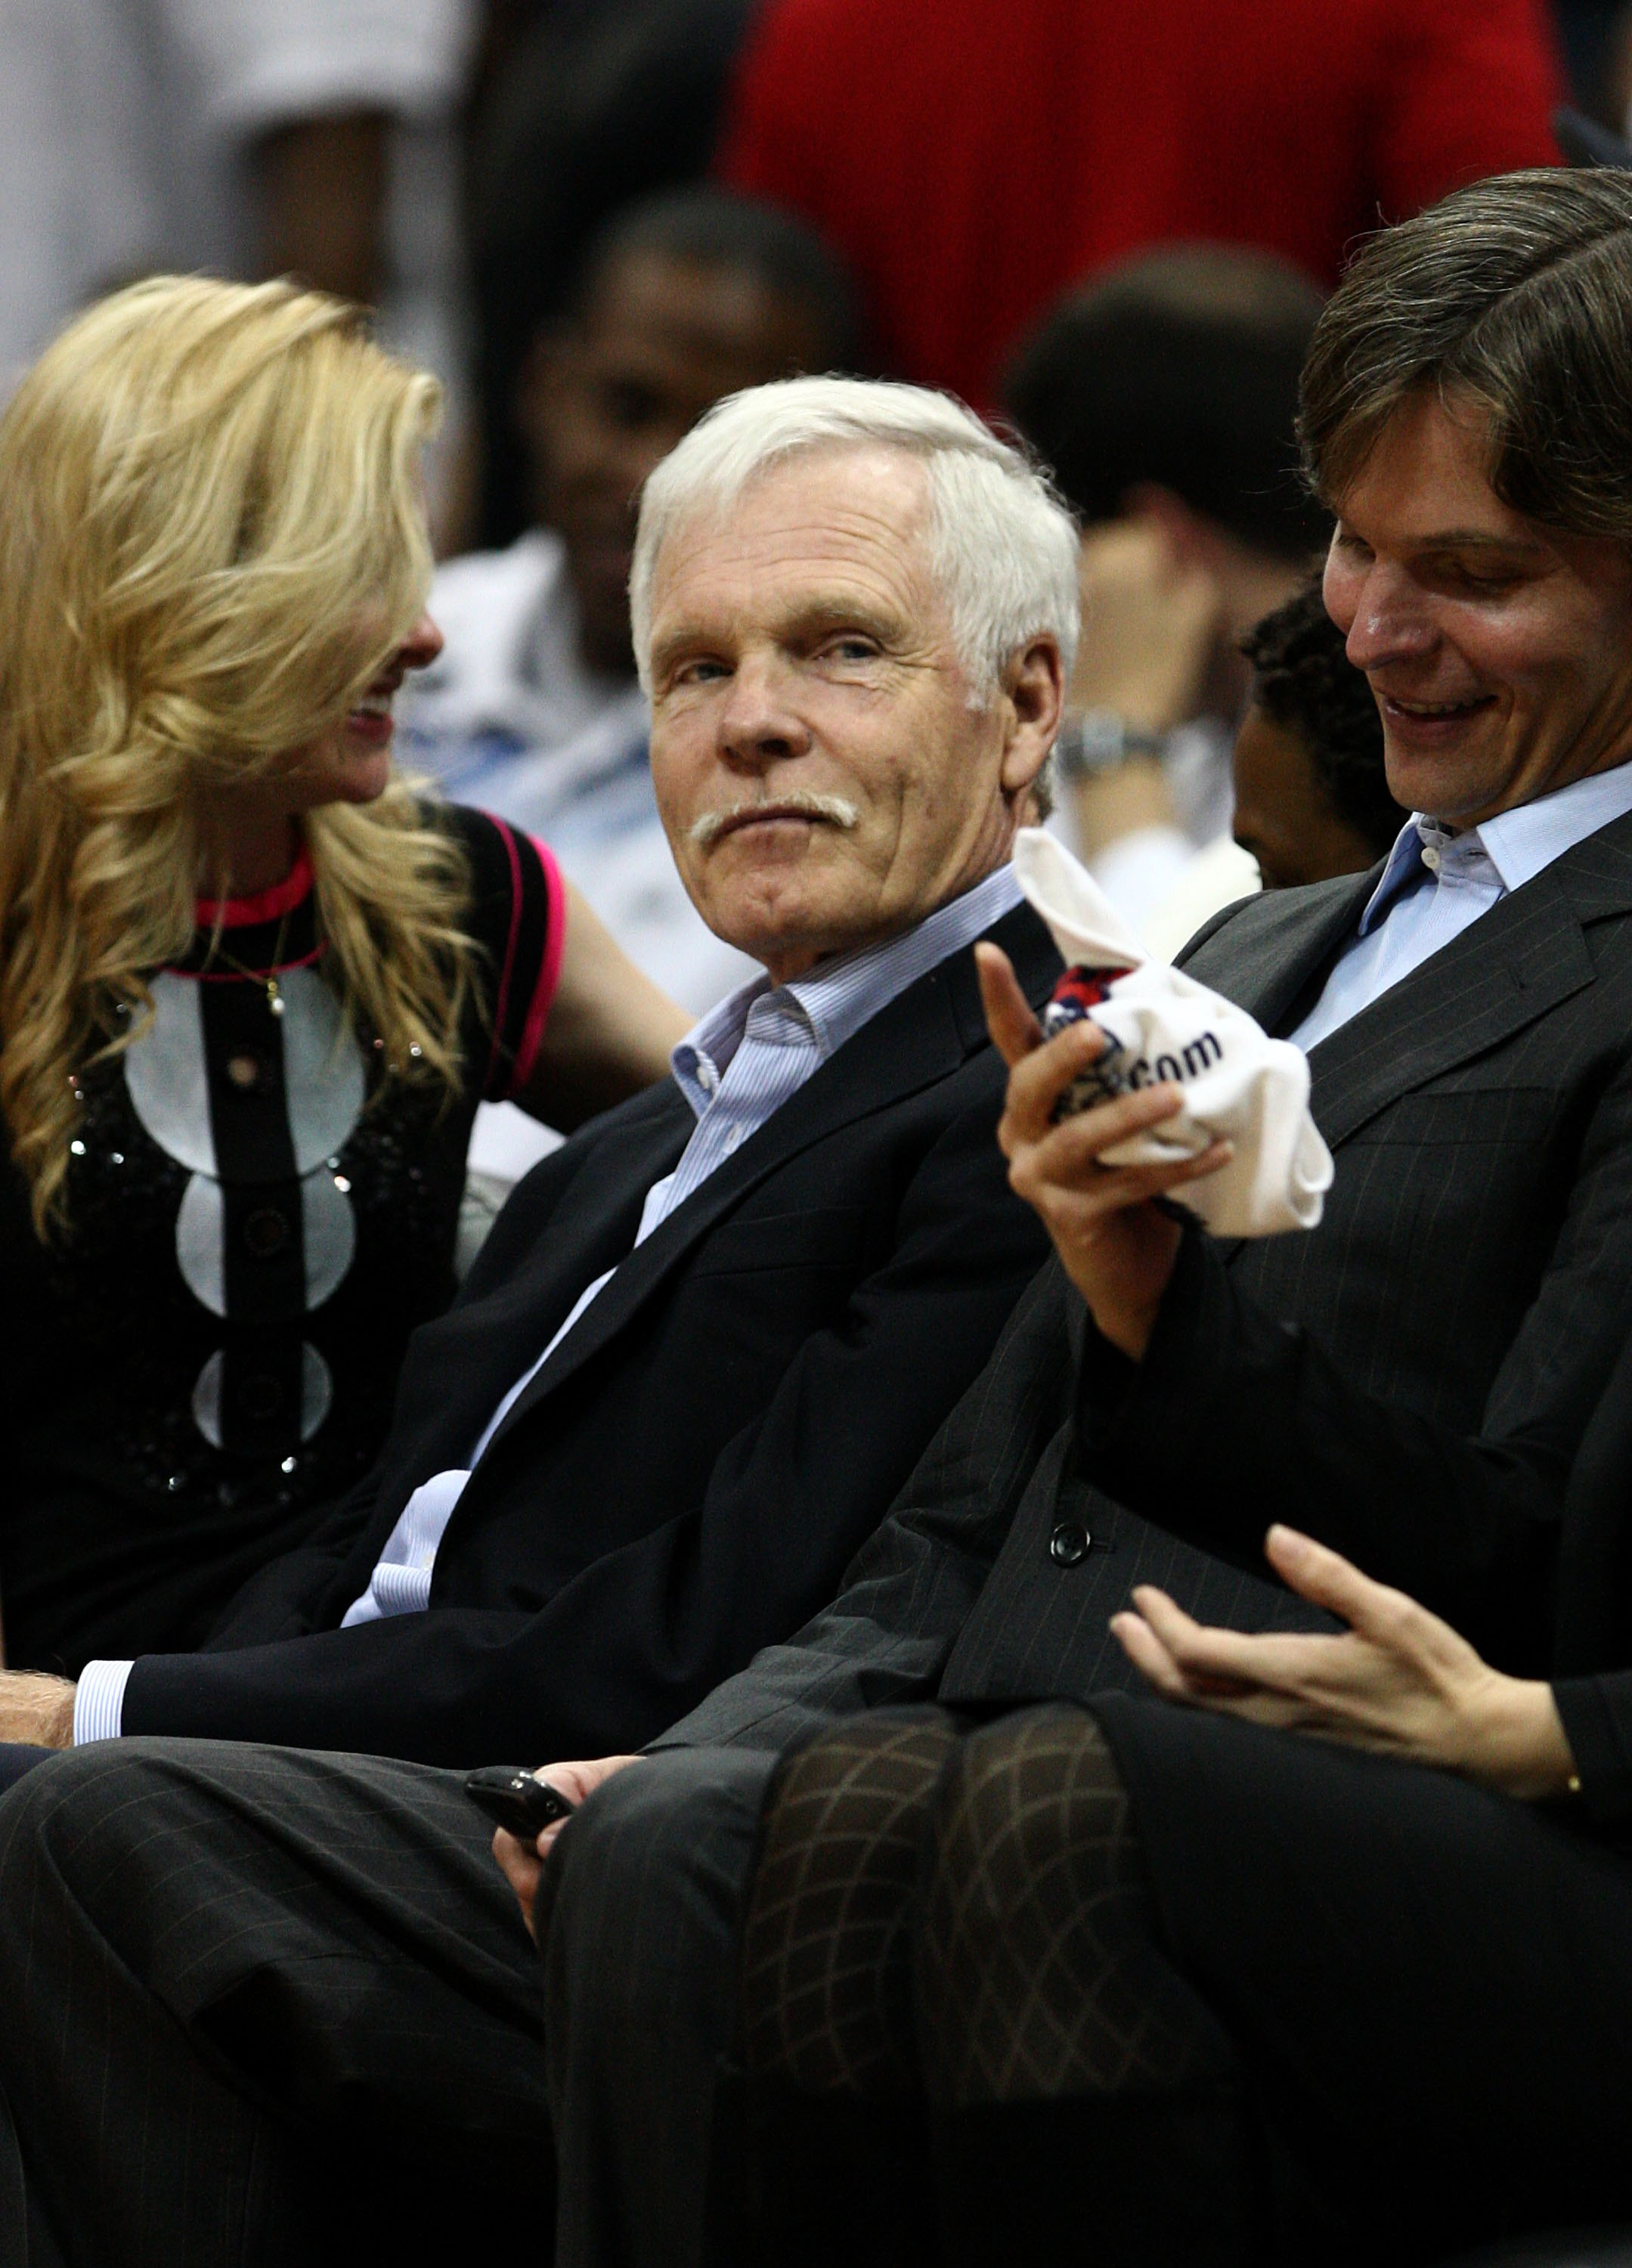 ATLANTA - APRIL 28: Ted Turner watches Game Four of the Eastern Conference Quarterfinals between the Atlanta Hawks and the Boston Celtics from the front row during the 2008 NBA Playoffs at the Philips Arena on April 28, 2008 in Atlanta, Georgia. The Hawks